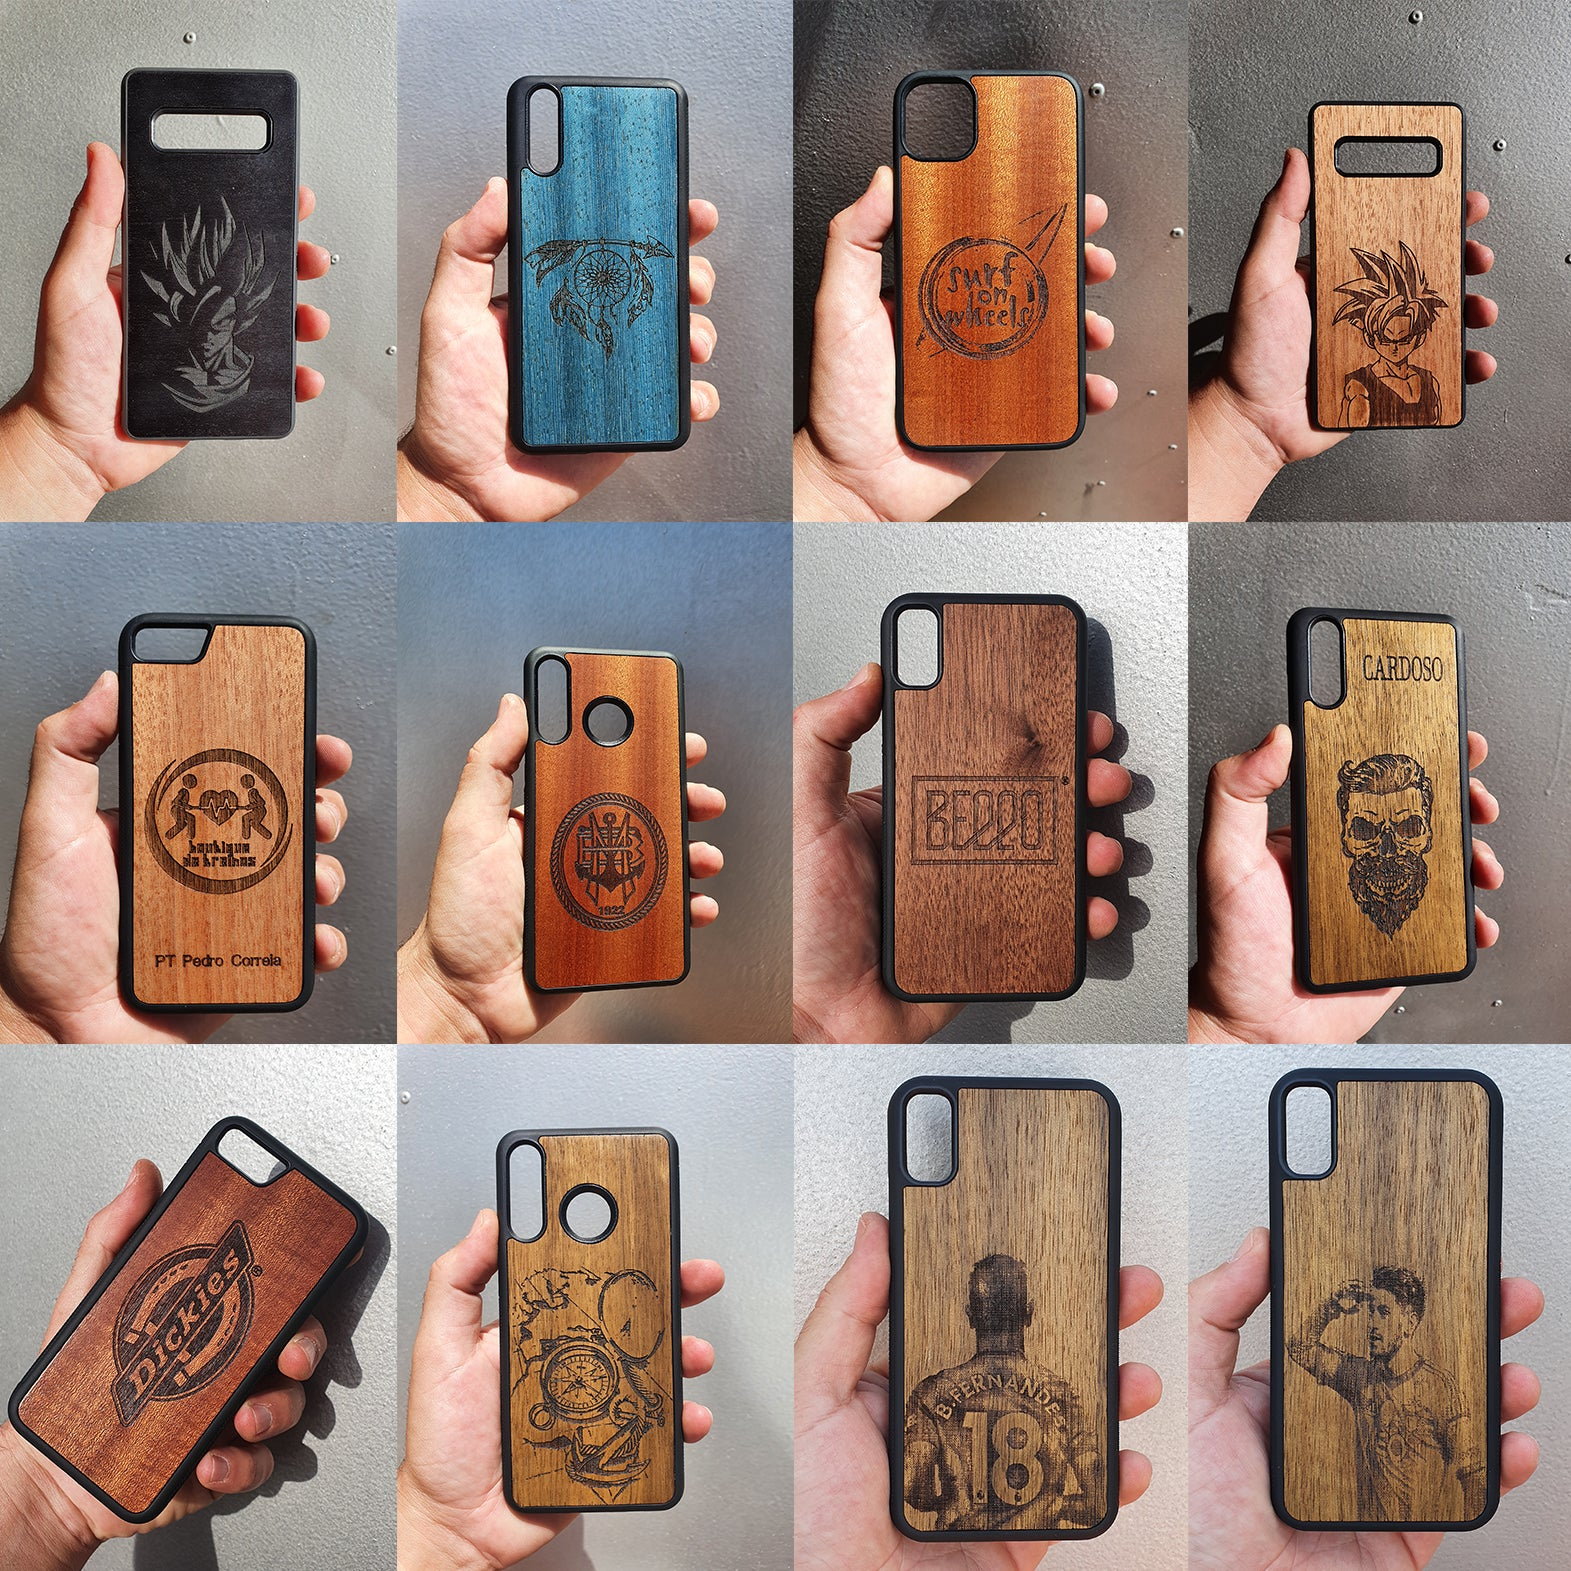 engrave wood cases, custom cases